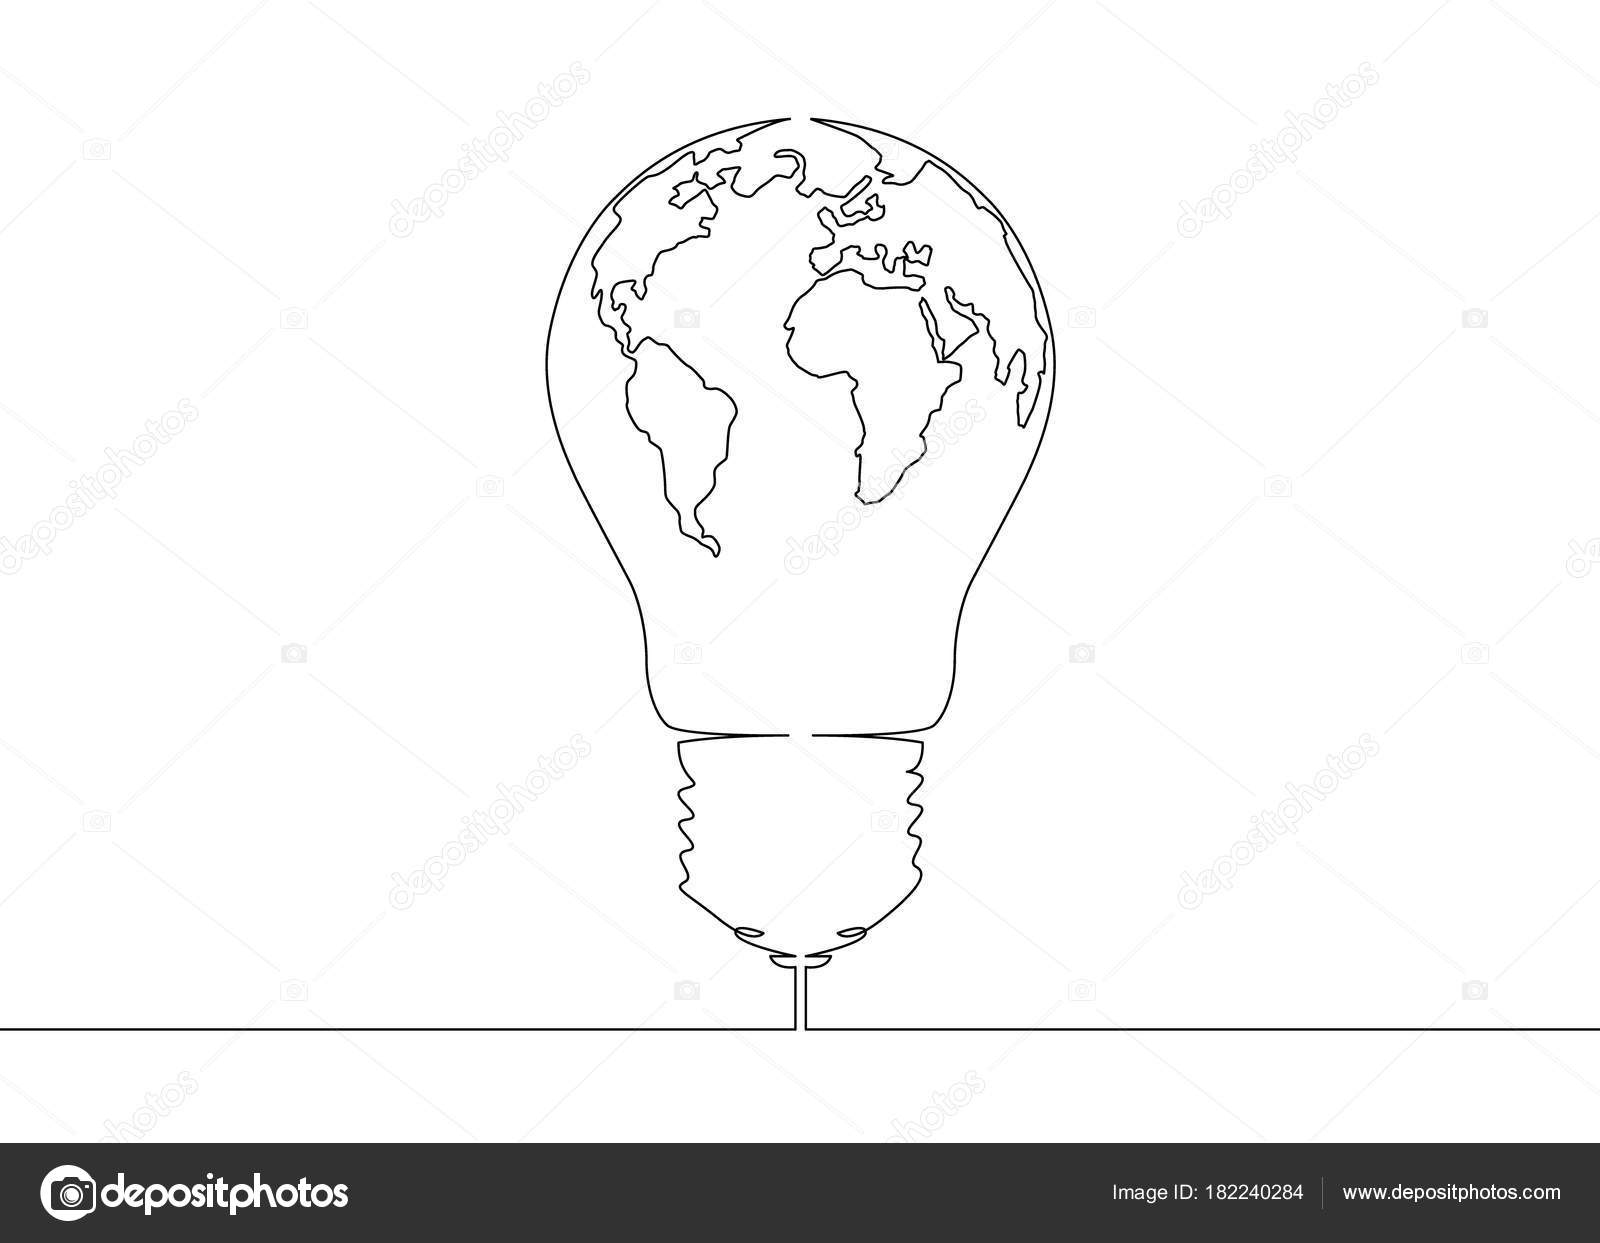 Continuous line drawing light bulb symbol idea world map globe continuous line drawing light bulb symbol idea world map globe inside the lamp stock vector gumiabroncs